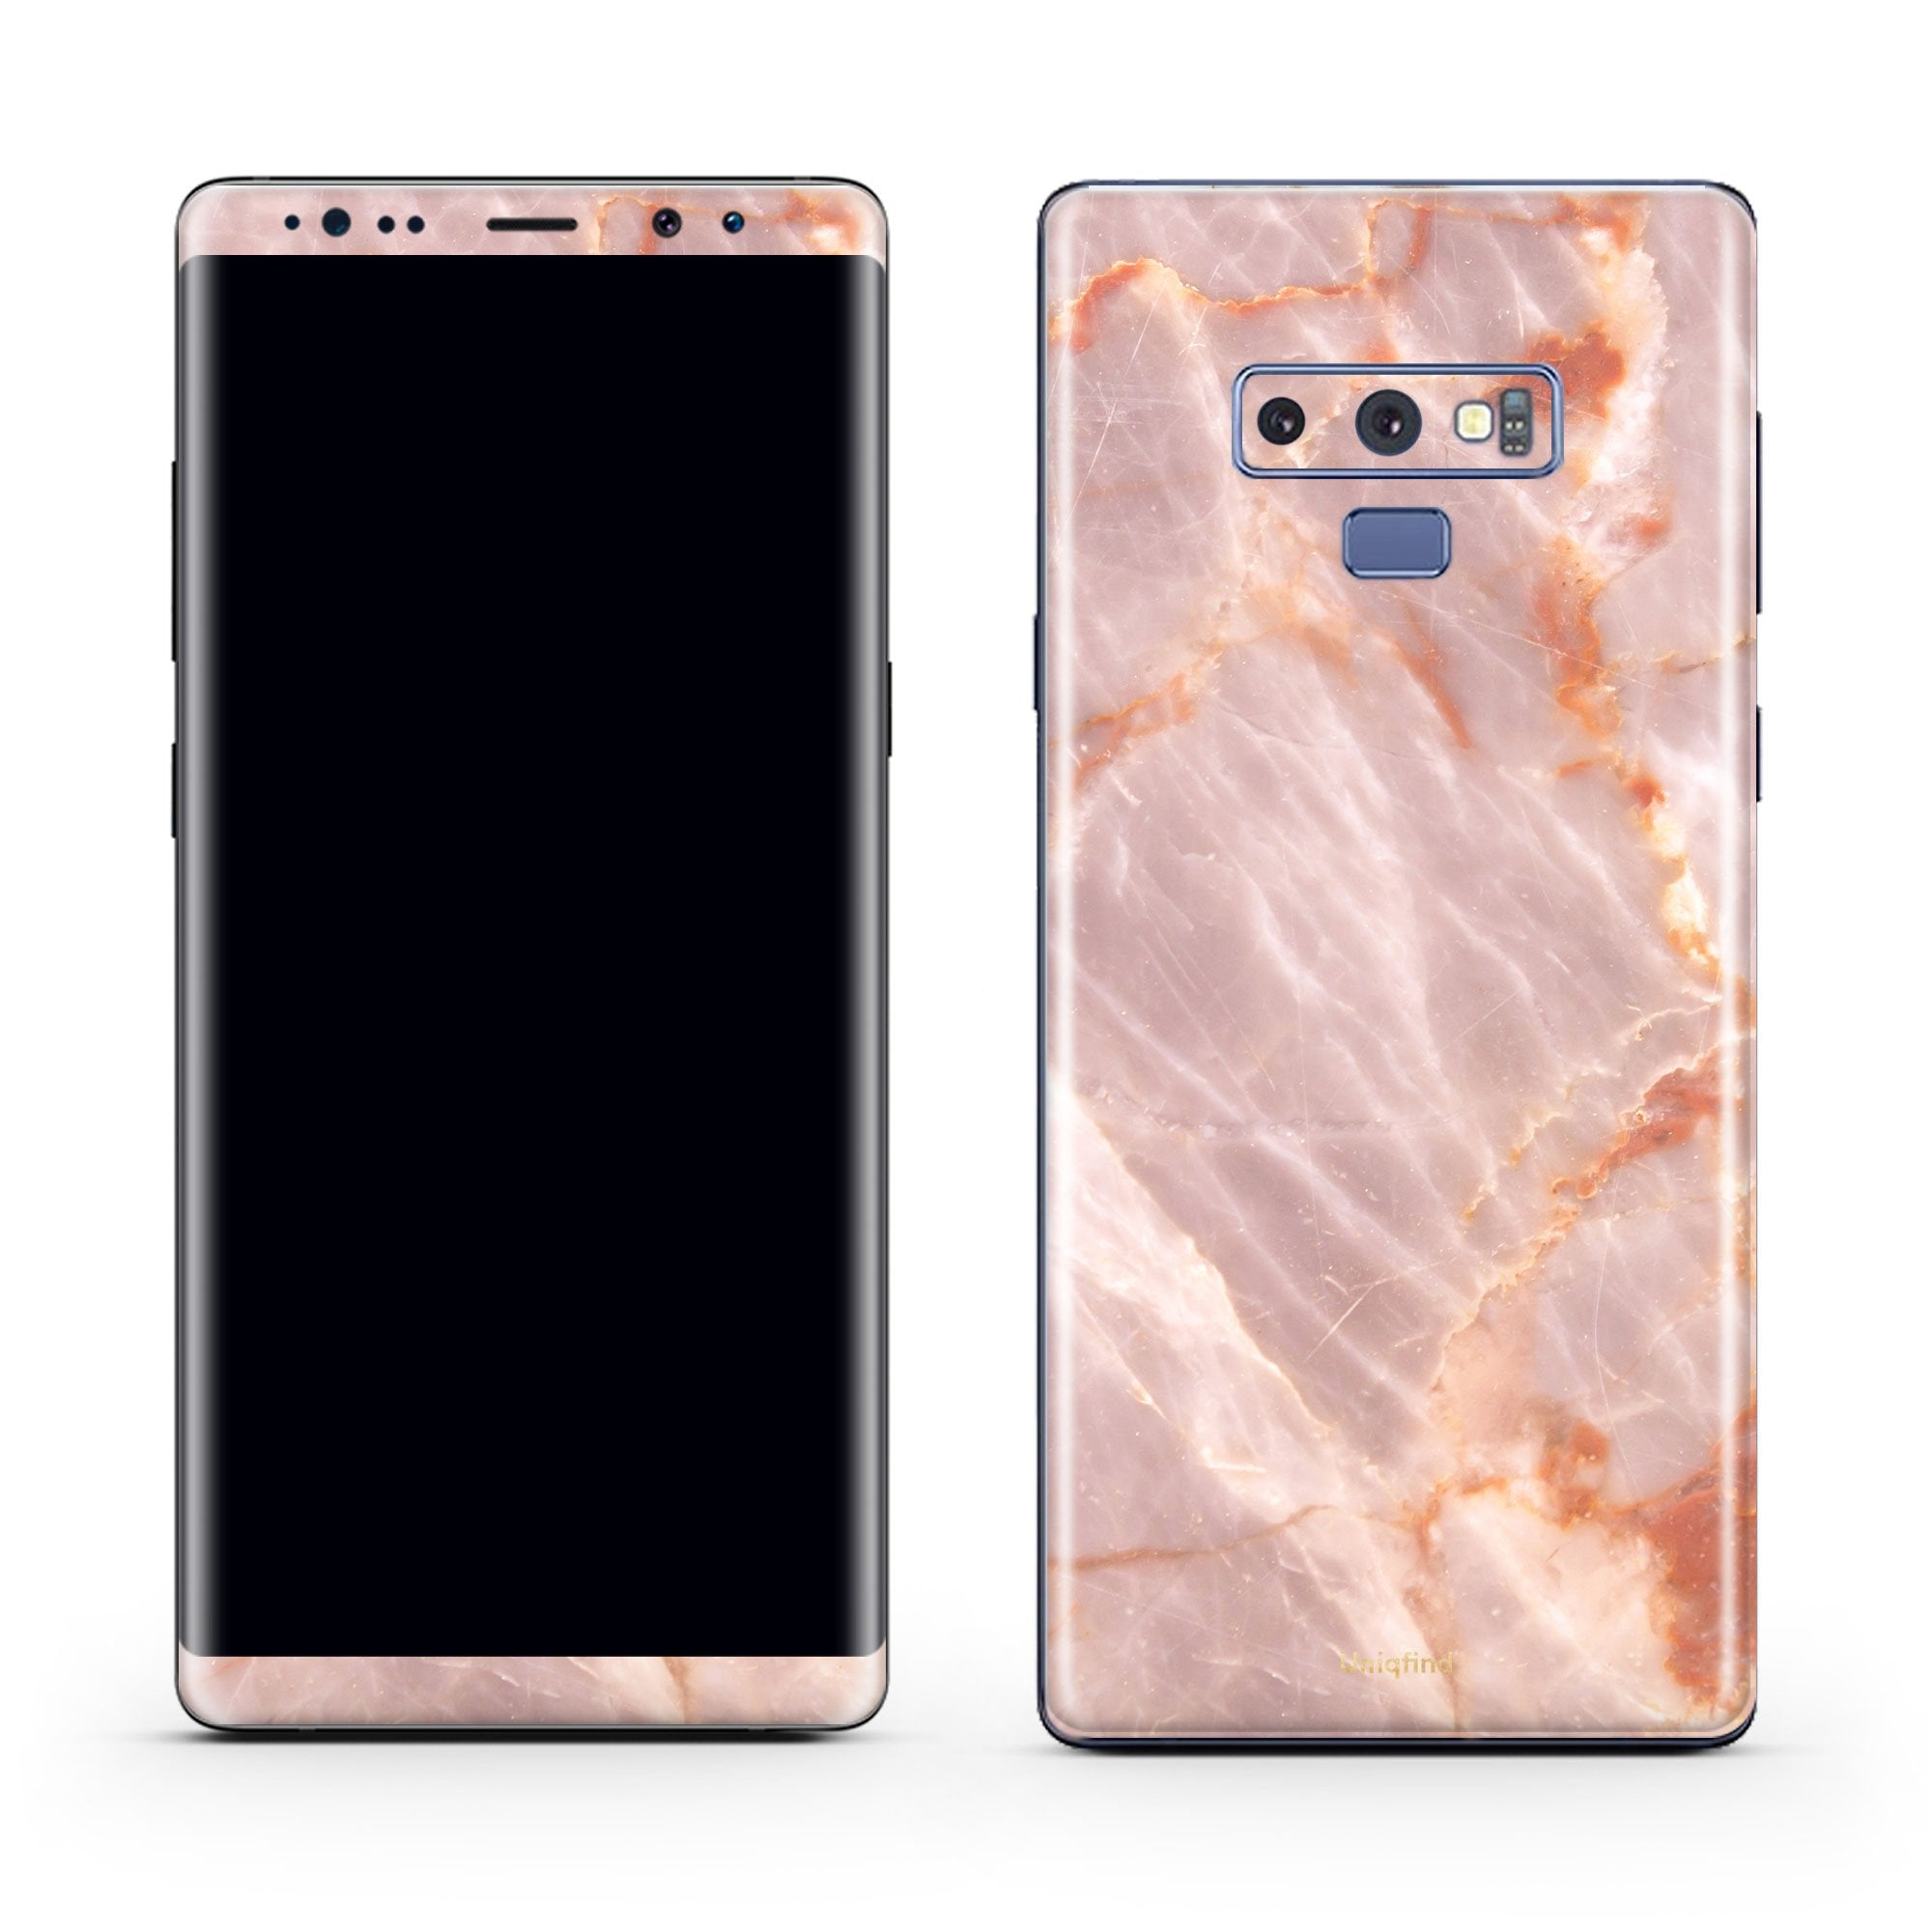 Blush Marble Galaxy Note 9 Skin + Case